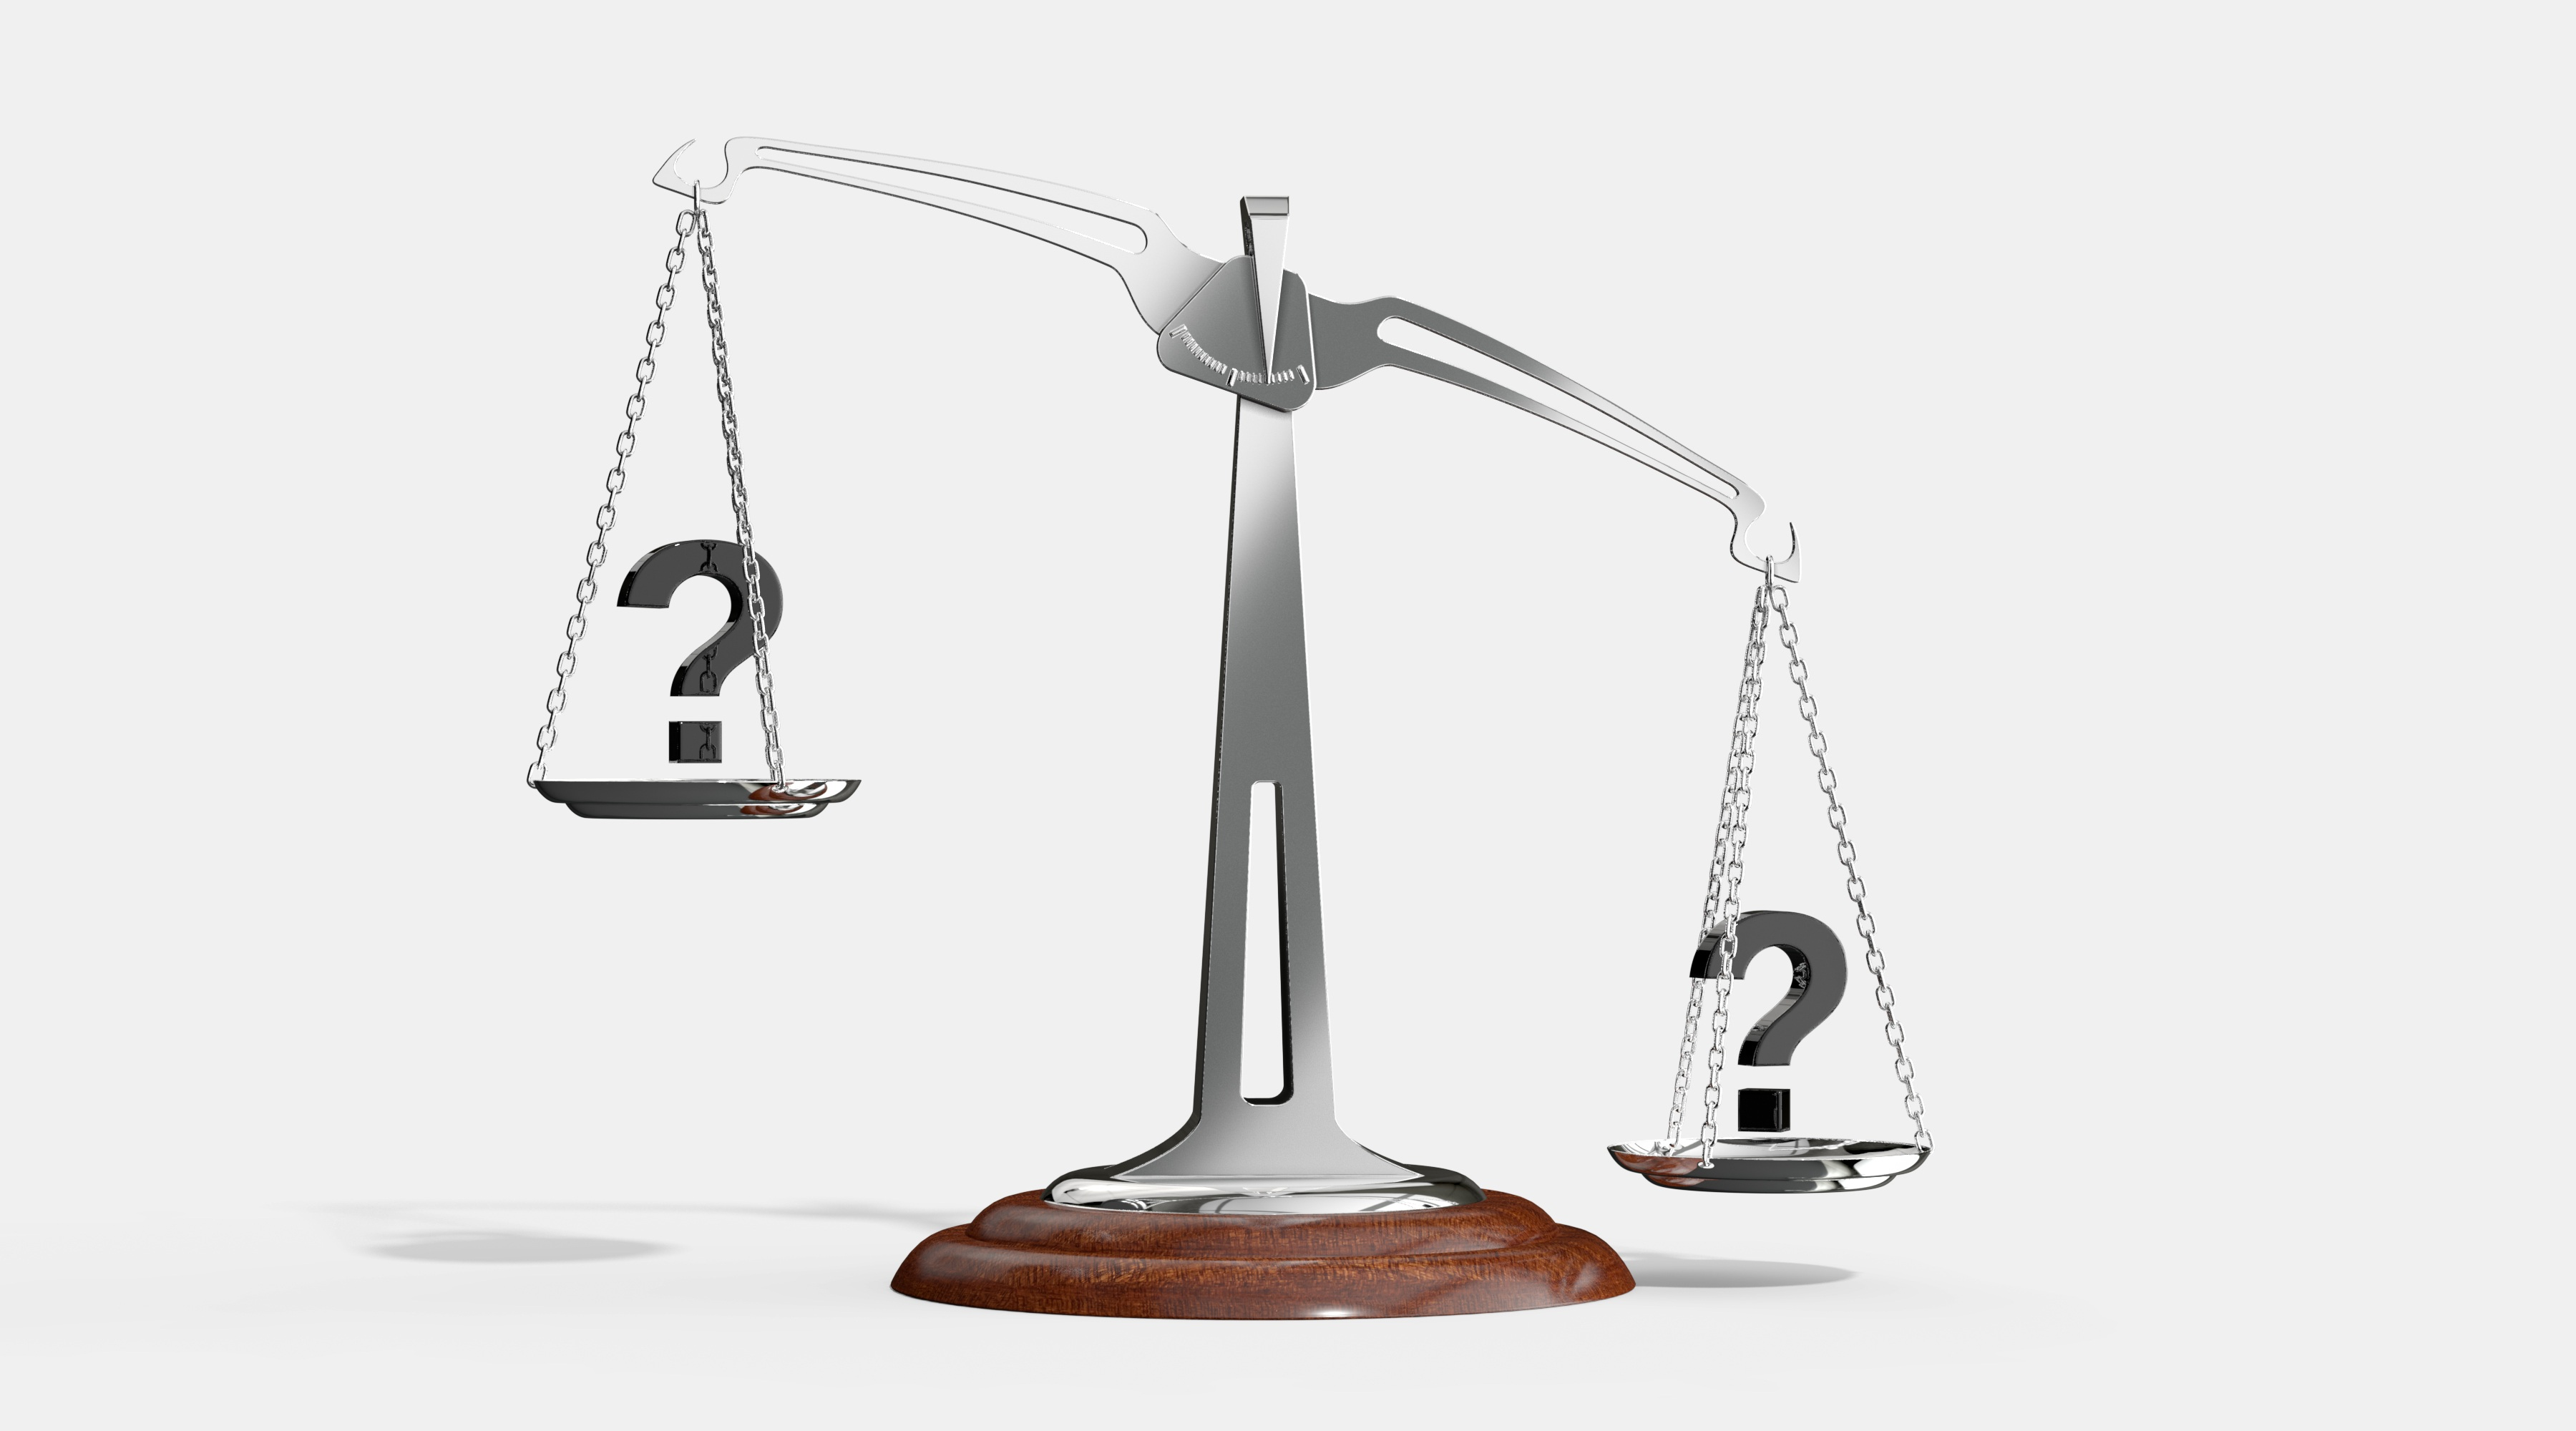 Auctions vs Private Sale – What is the %?